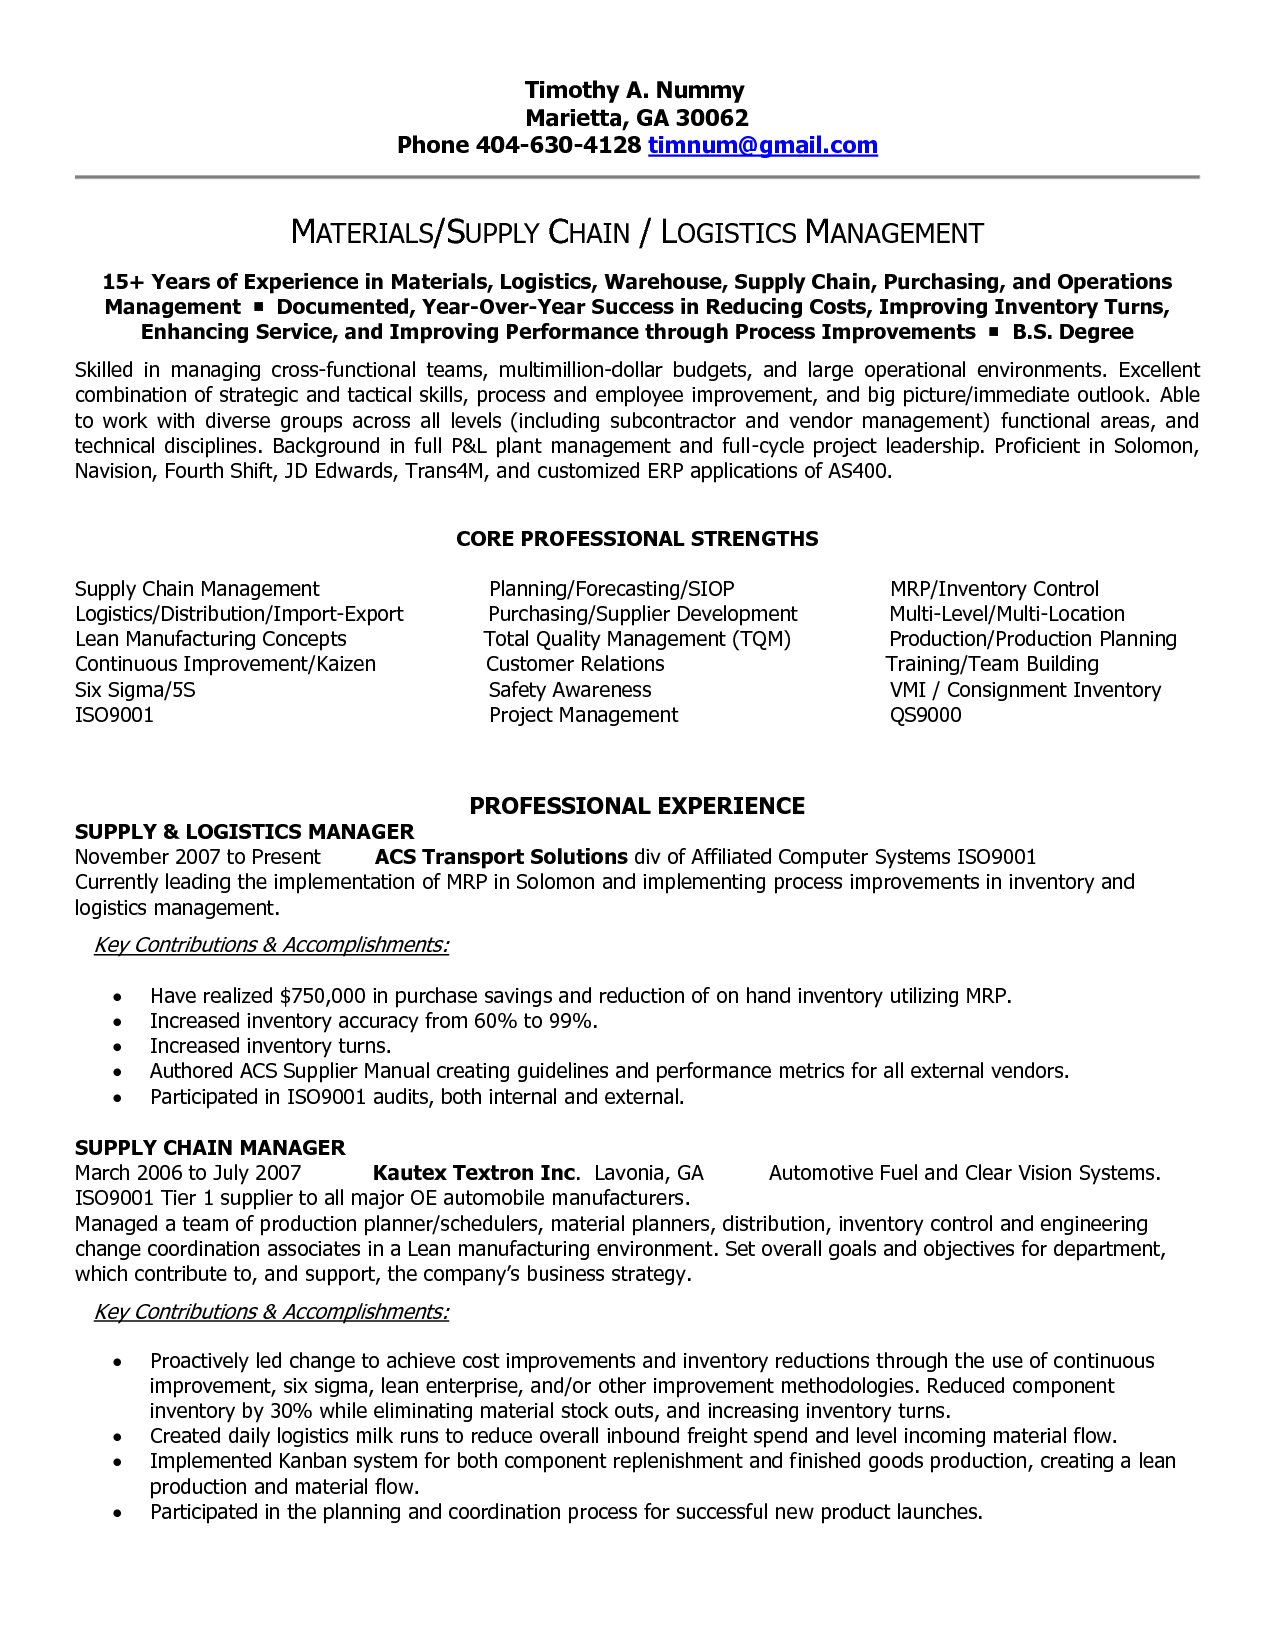 Awesome Supply Chain Resume Templates | Supply Chain Manager In Atlanta GA Resume  Timothy Nummy